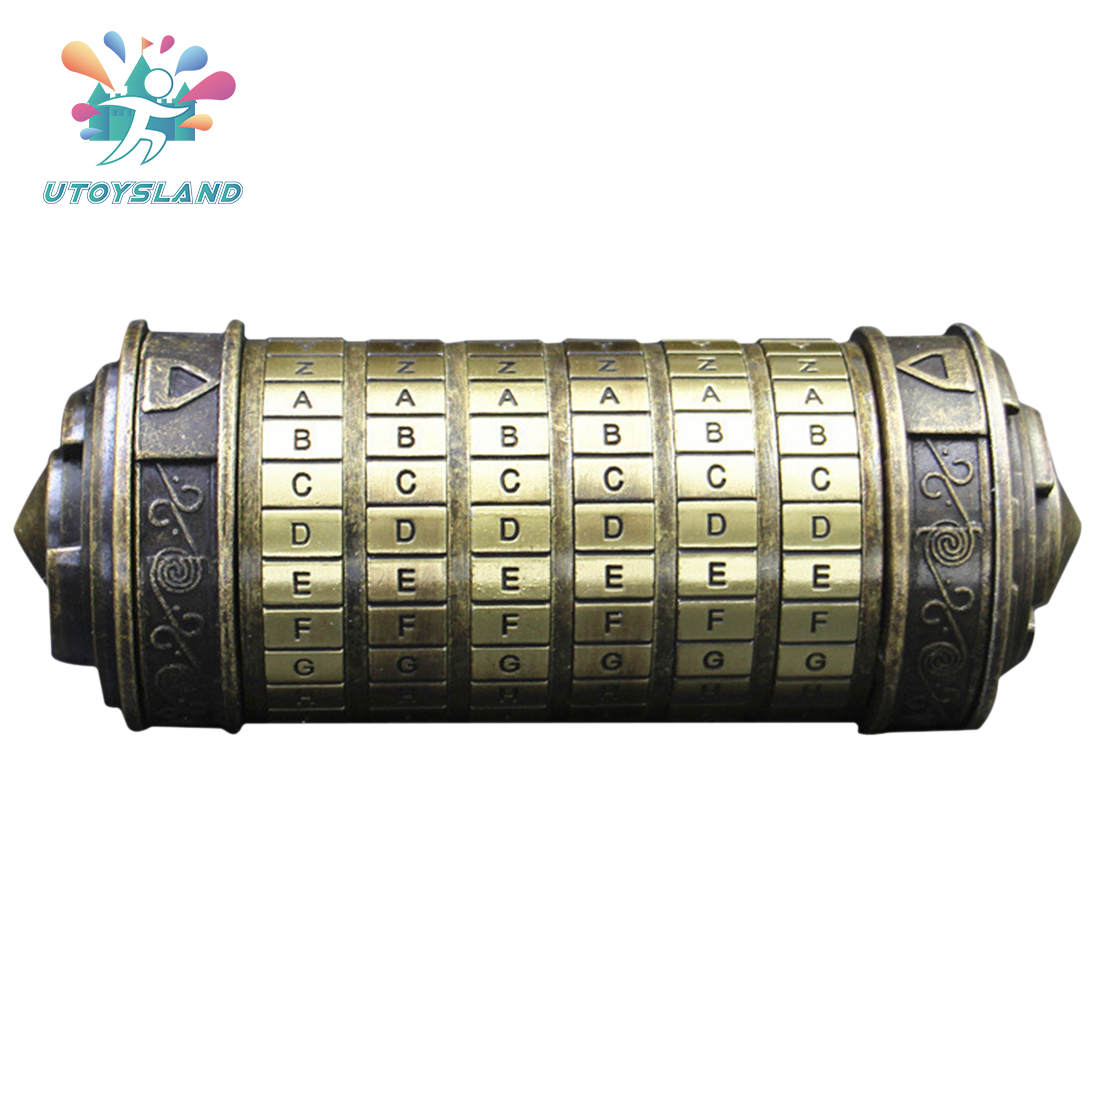 High Recommend Bronze Cryptex Lock Da Vinci Code Creative Gift Educational Coded Lock Toy Support Adult Children Brain Training